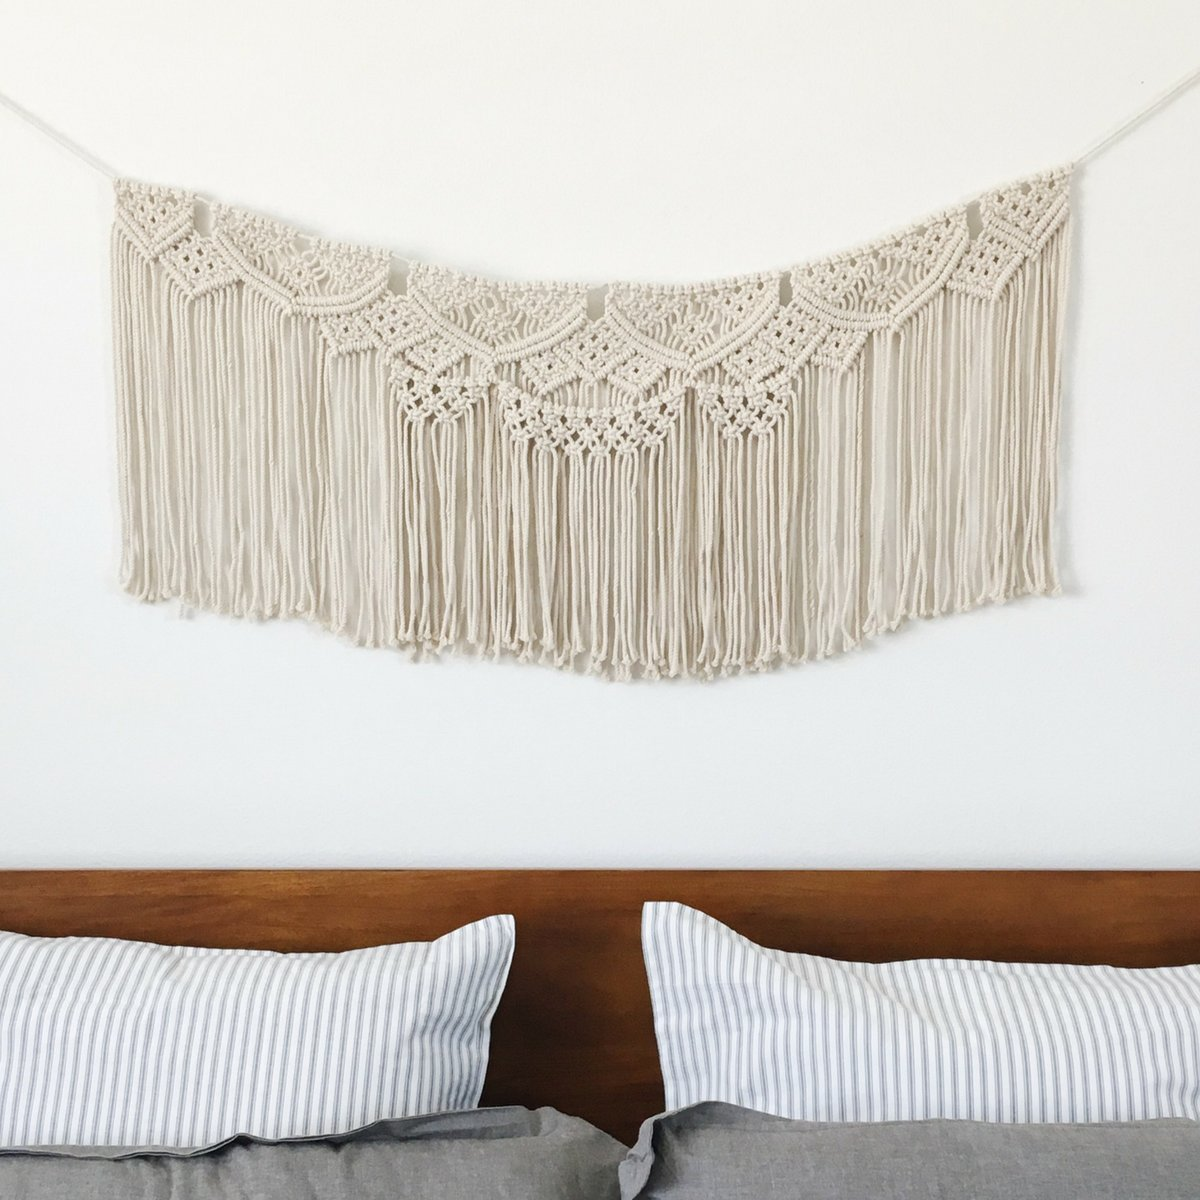 Macrame Wall Hanging Woven Banner - Large Boho Shabby Chic Bohemian Home Decor, Garland, or Tapestry - Apartment Dorm Living Room Bedroom Kitchen Baby Nursery Art - Backdrop Decoration - 15'' W x 35'' L